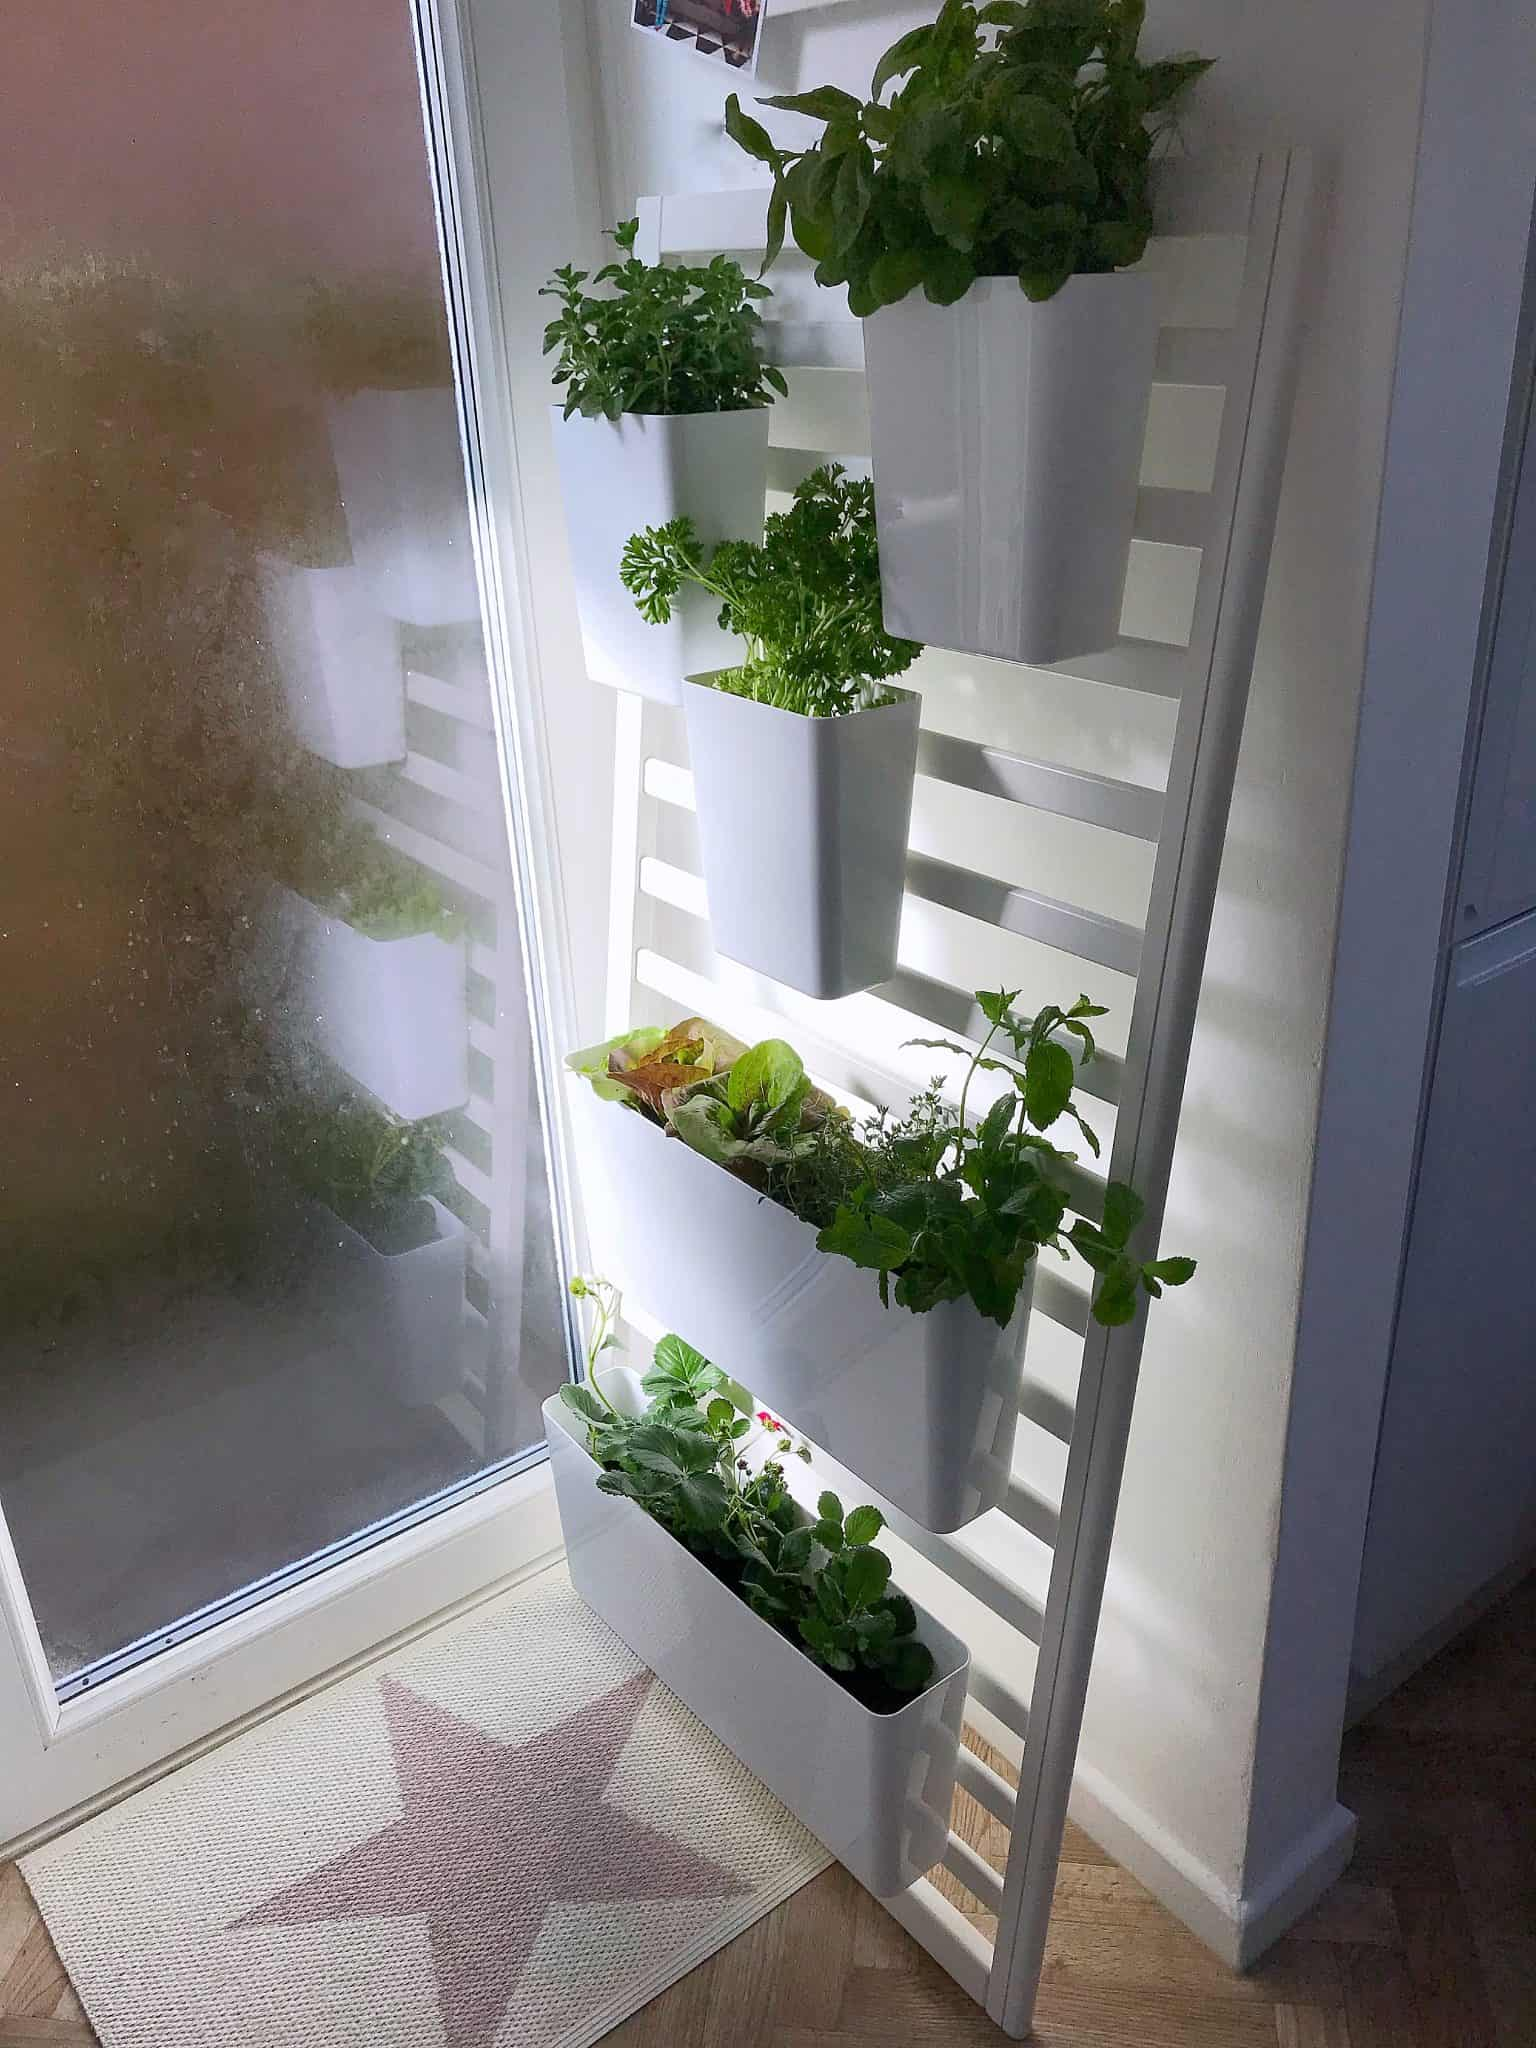 Upcycled Cot Side made in to an Indoor Edible Garden